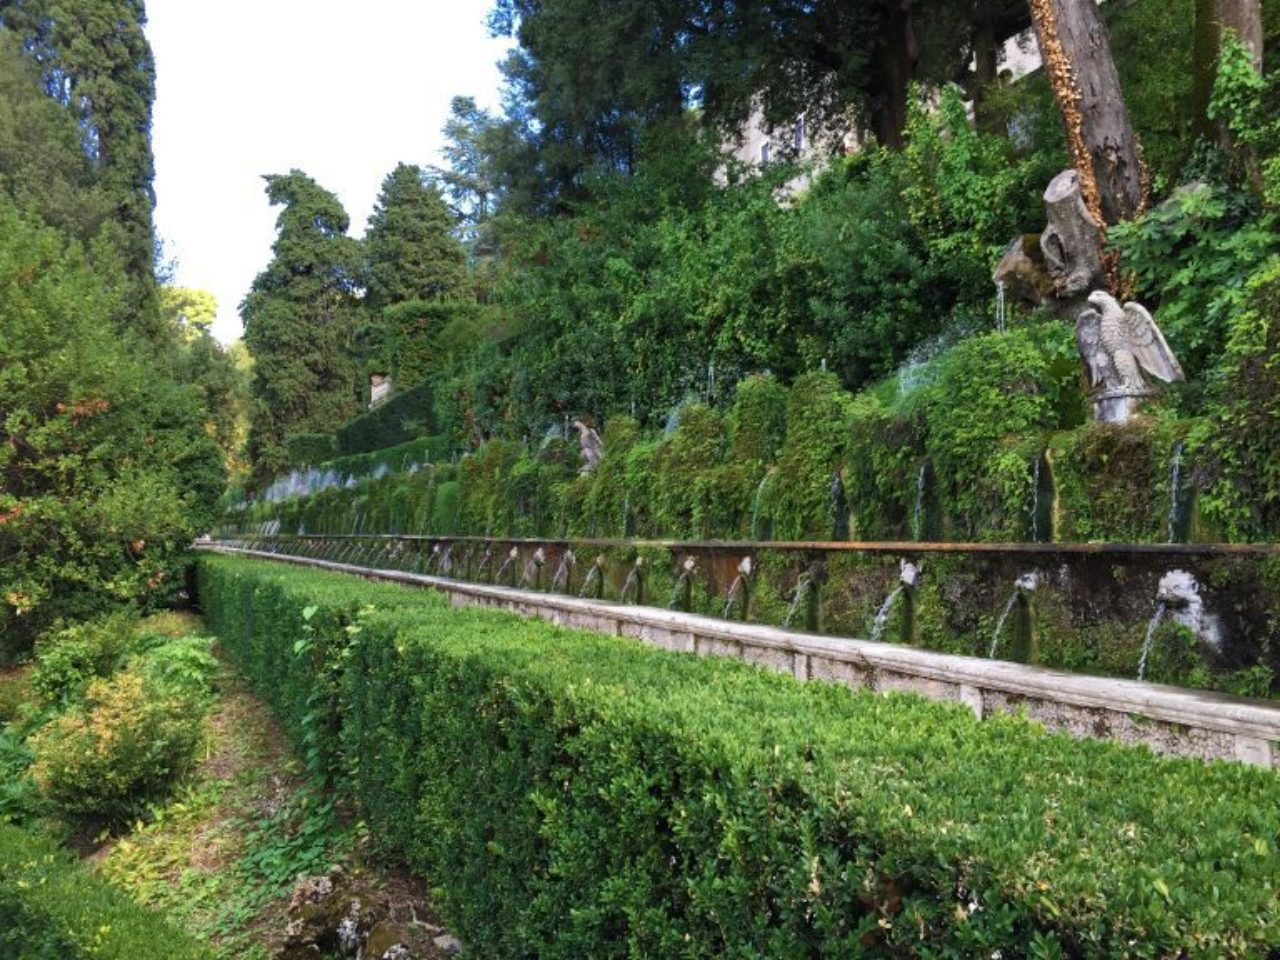 The Hundred Fountains, Villa d'Este